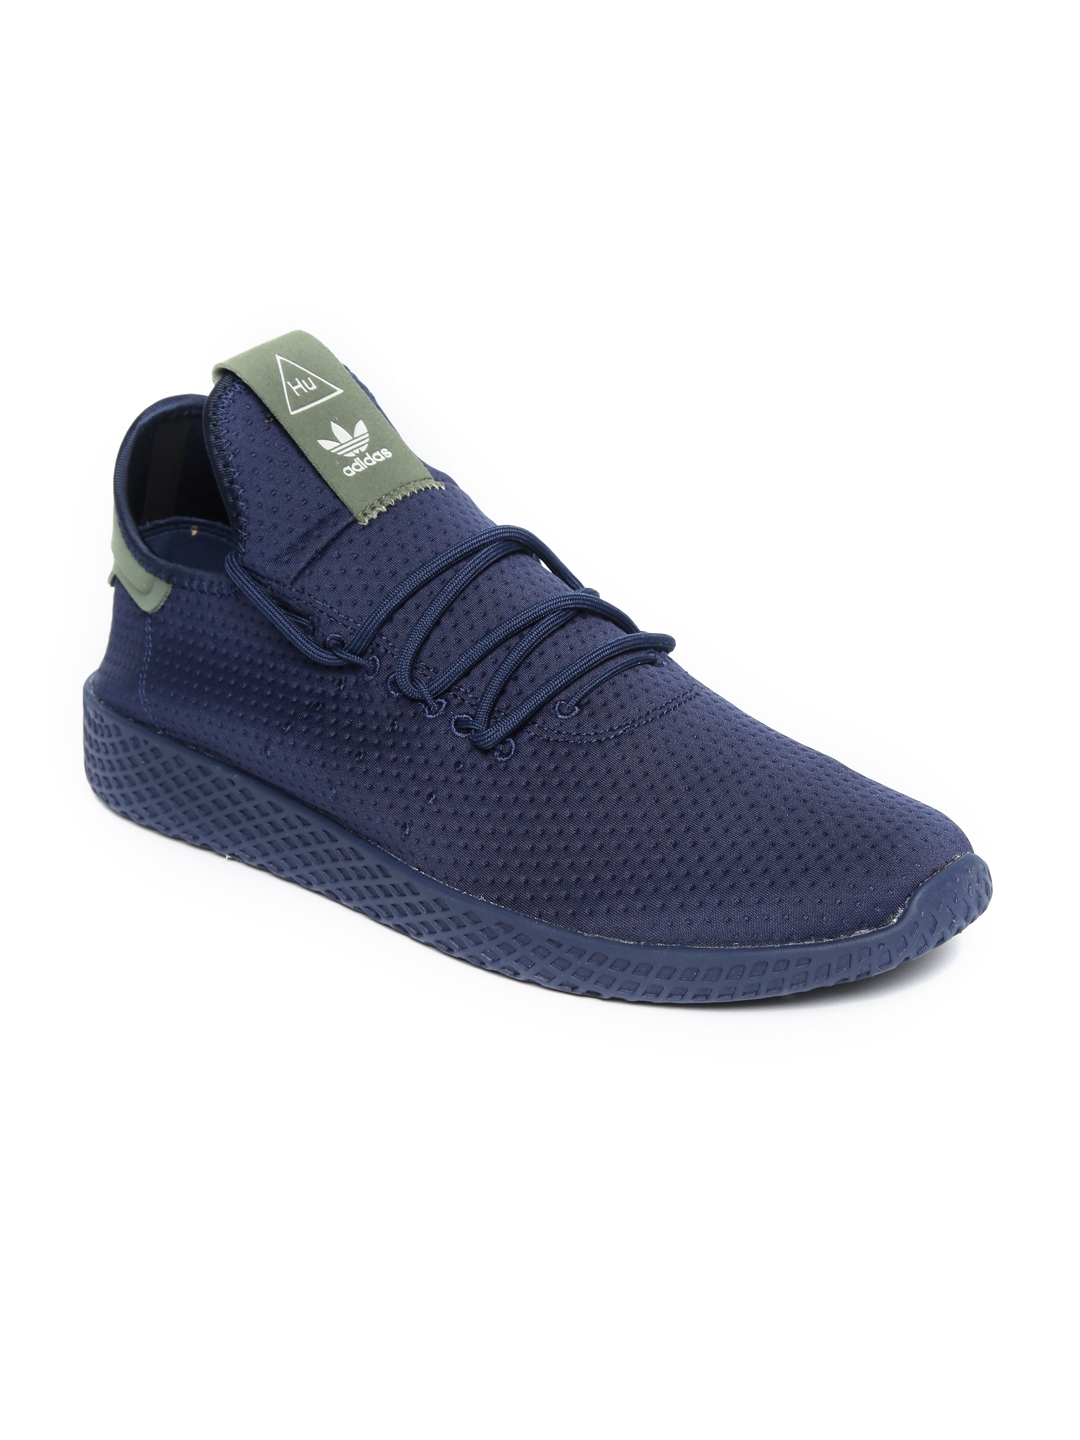 7c08f51e25 ADIDAS Originals Men Navy Blue Pharrell Williams Tennis HU Sneakers